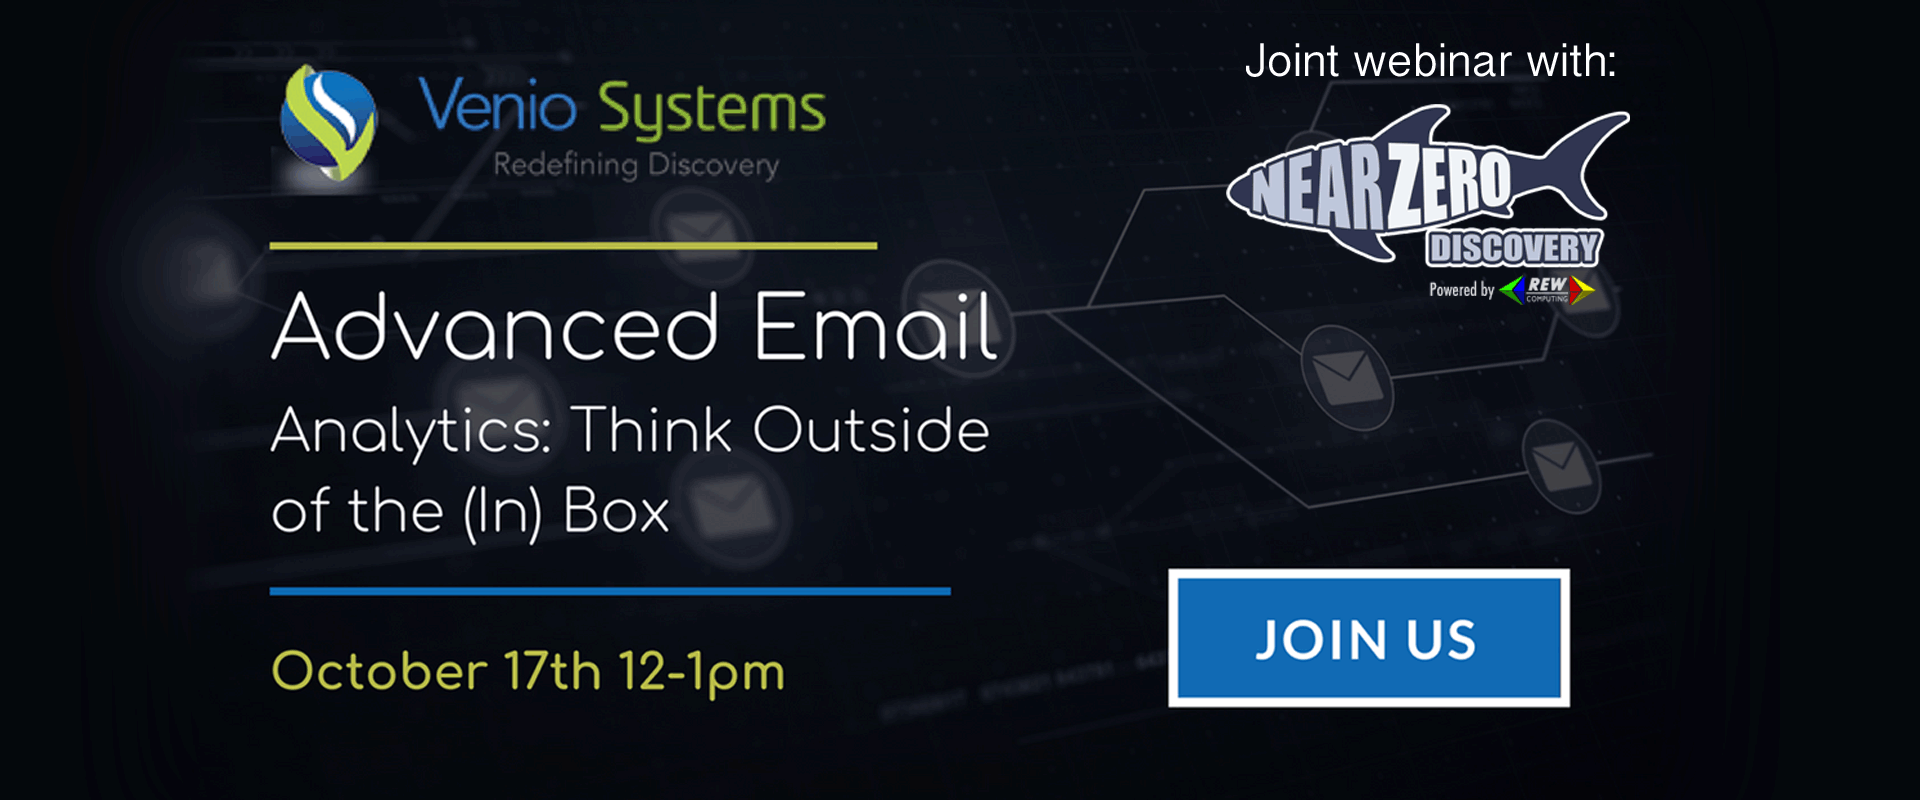 Advanced Email Analytics: Think Outside of the (In)Box webinar